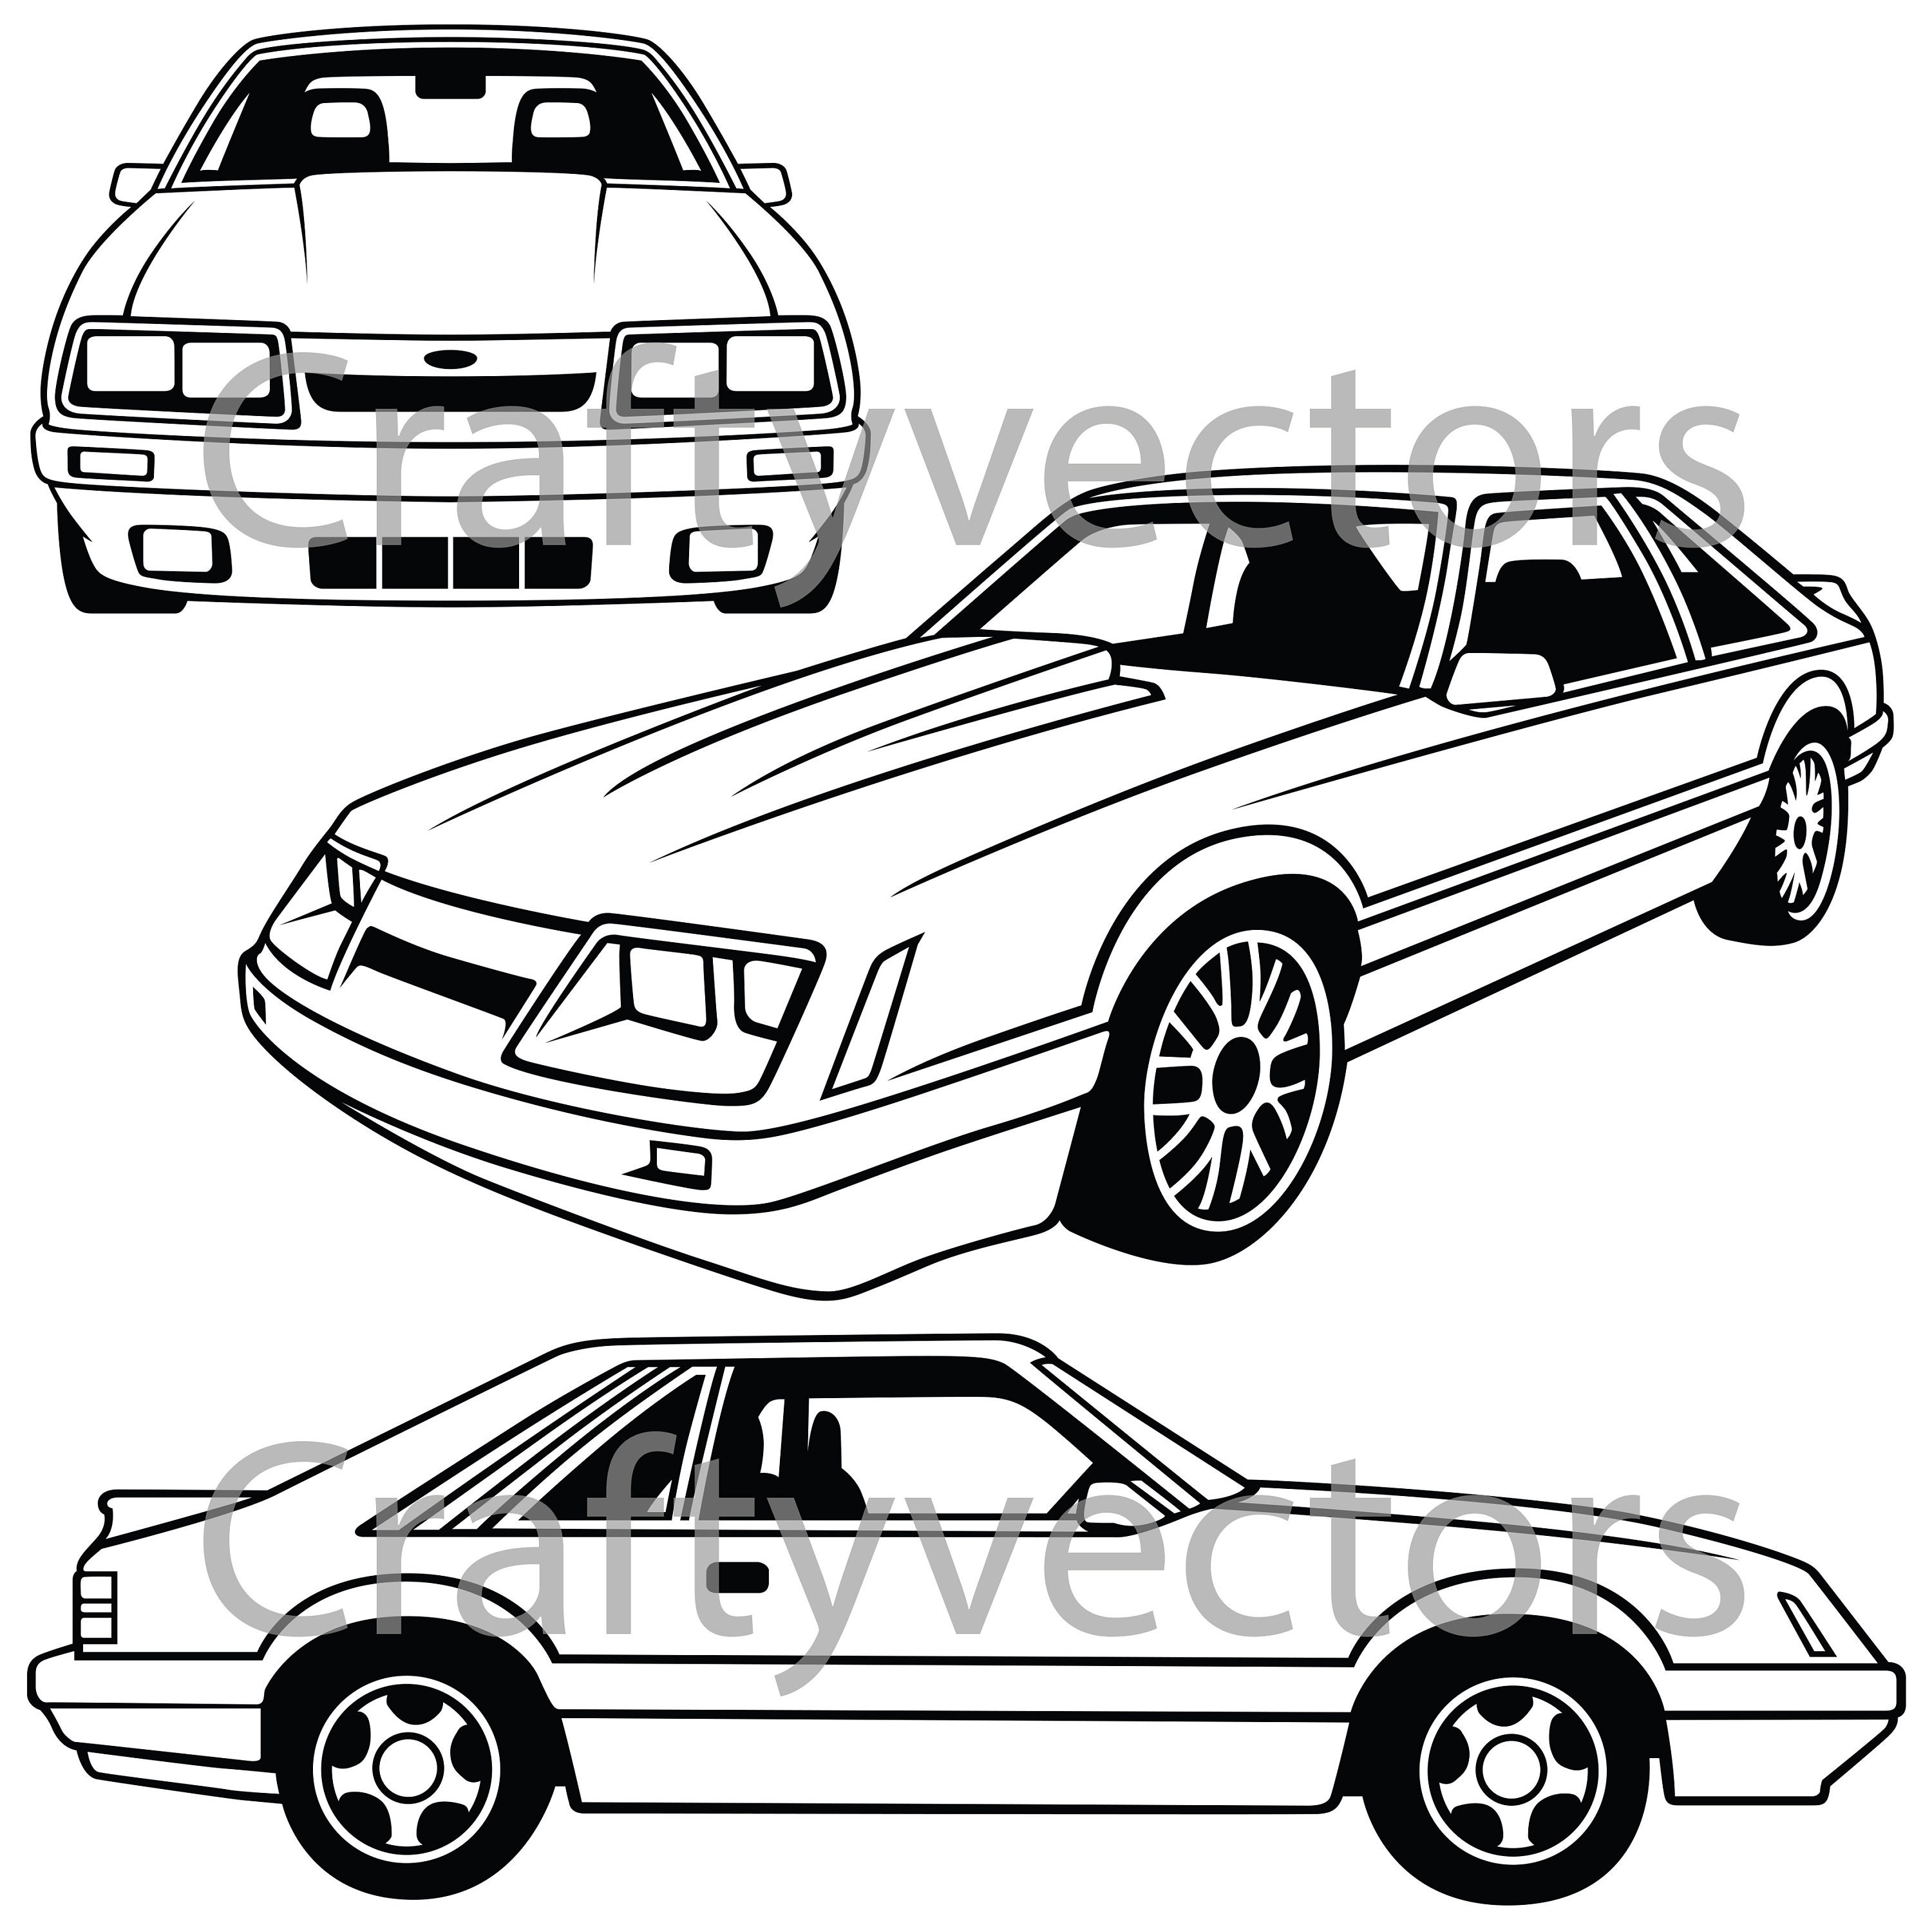 ford mustang 4 eyes 86 vector svg cut file etsy 1970 Dodge Charger 50